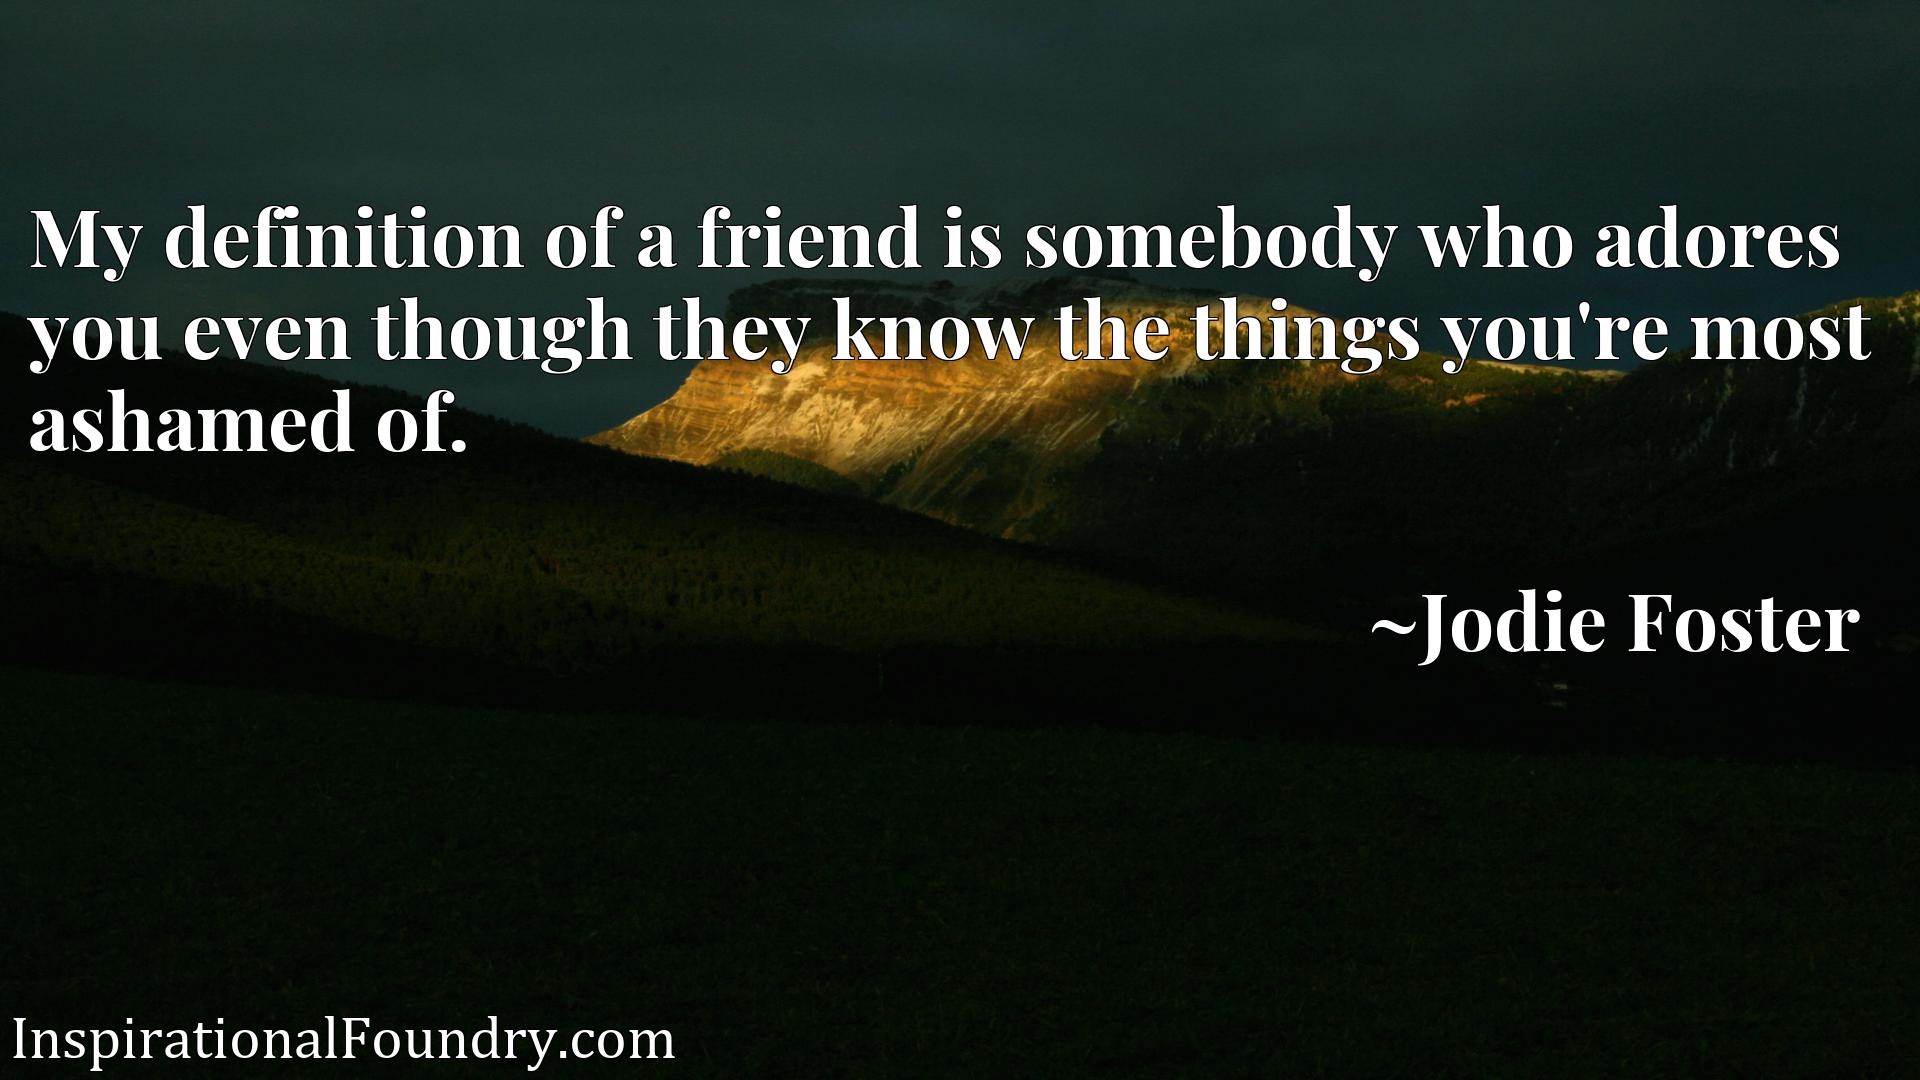 Quote Picture :My definition of a friend is somebody who adores you even though they know the things you're most ashamed of.